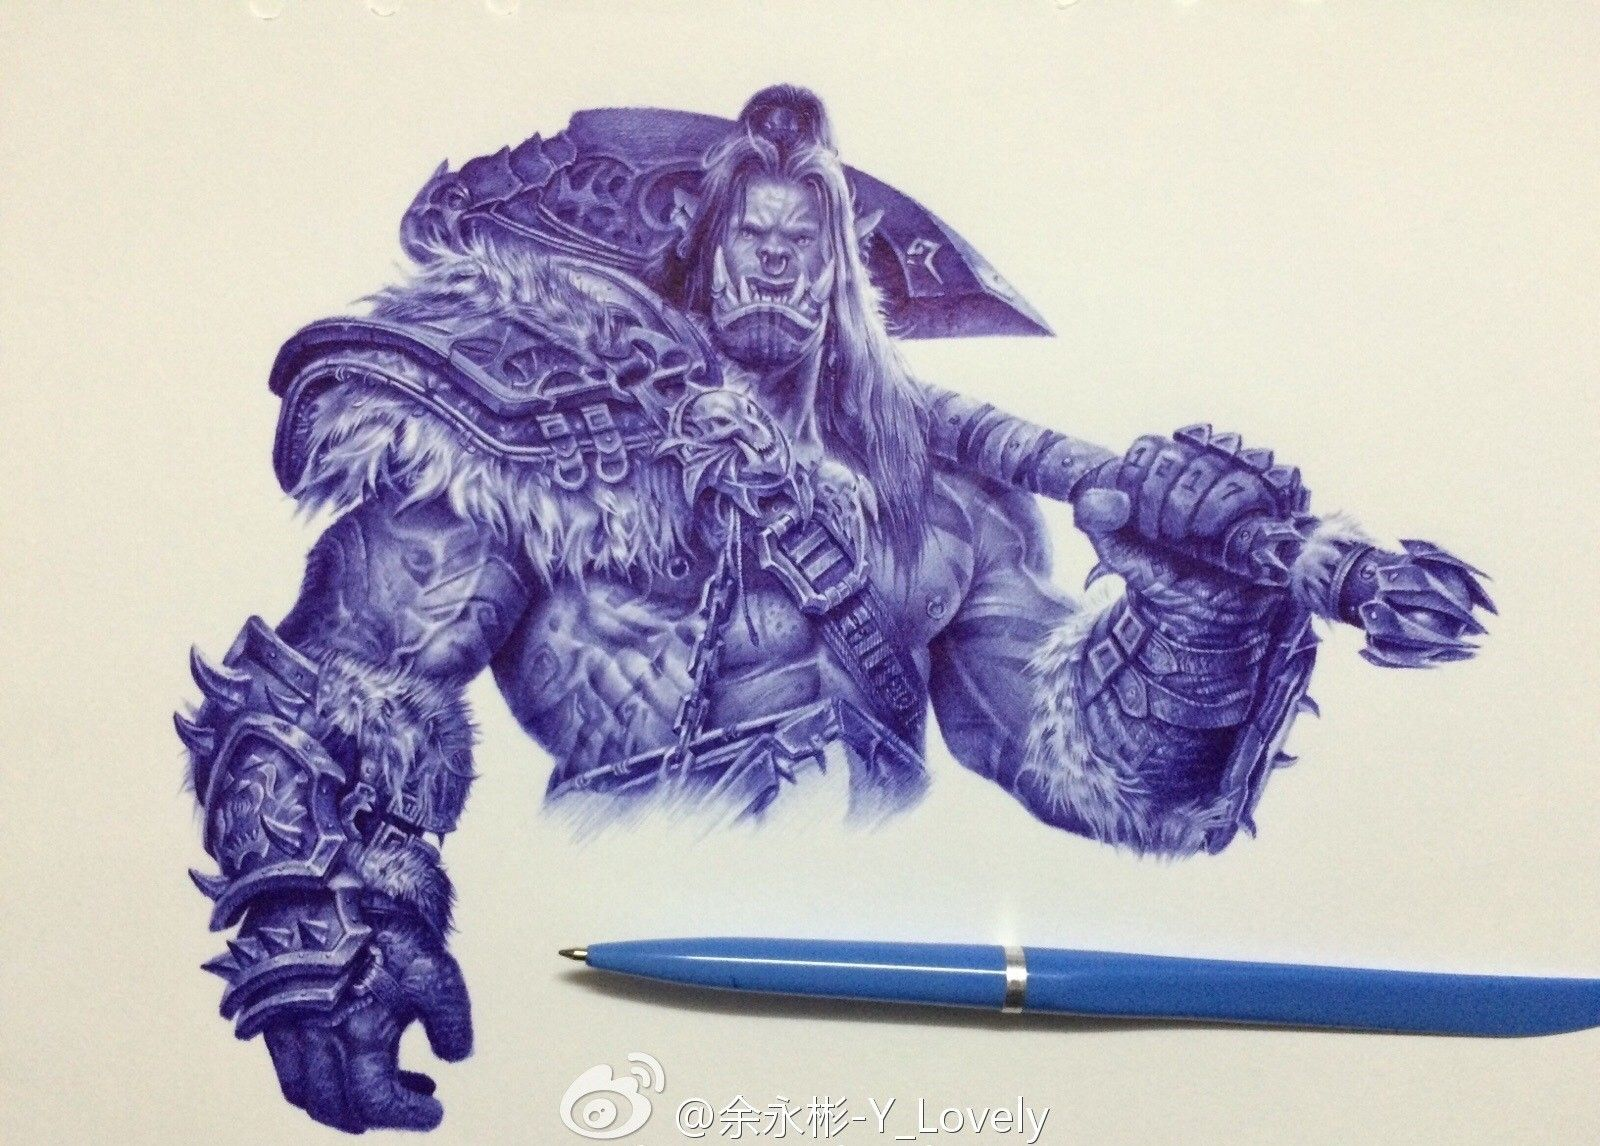 Check out the epic world of warcraft fan art drawn by ballpoint